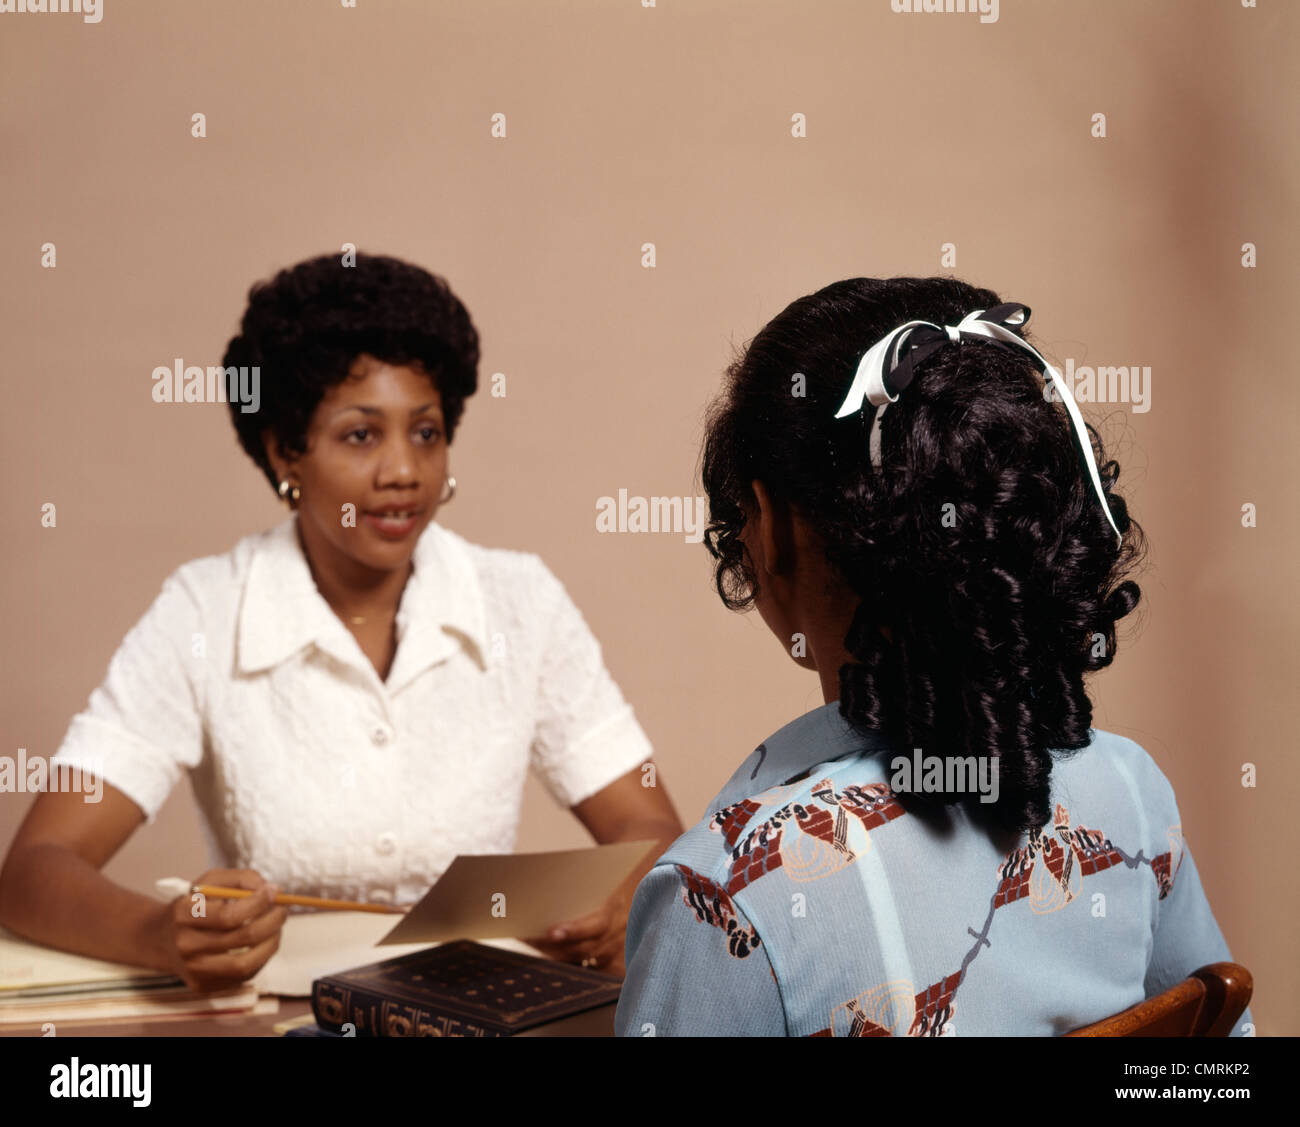 1970 1970s RETRO AFRICAN AMERICAN BLACK NURSE QUESTION INTERVIEW - Stock Image